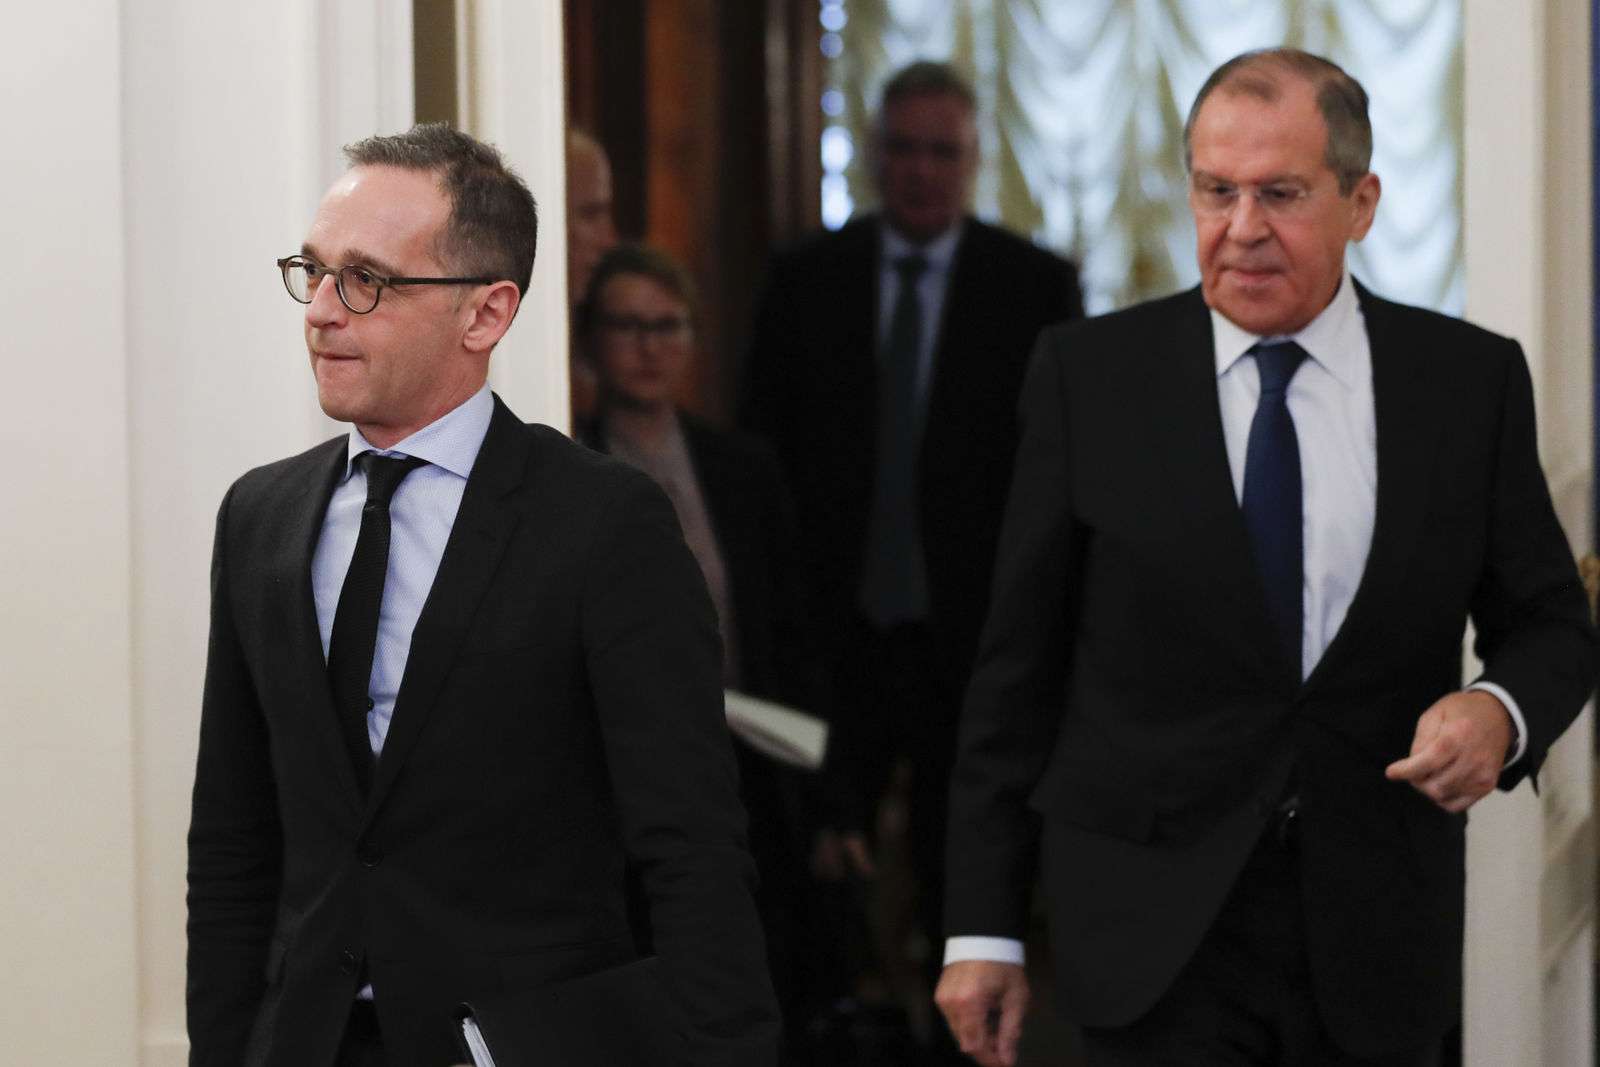 Russian Foreign Minister Sergey Lavrov, right, and Germany's Foreign Minister Heiko Maas enter a hall for their talks in Moscow, Russia, Friday, Jan. 18, 2019. Germany's foreign minister has urged Russia to save a key arms treaty with the U.S. to prevent a new arms race. (AP Photo)